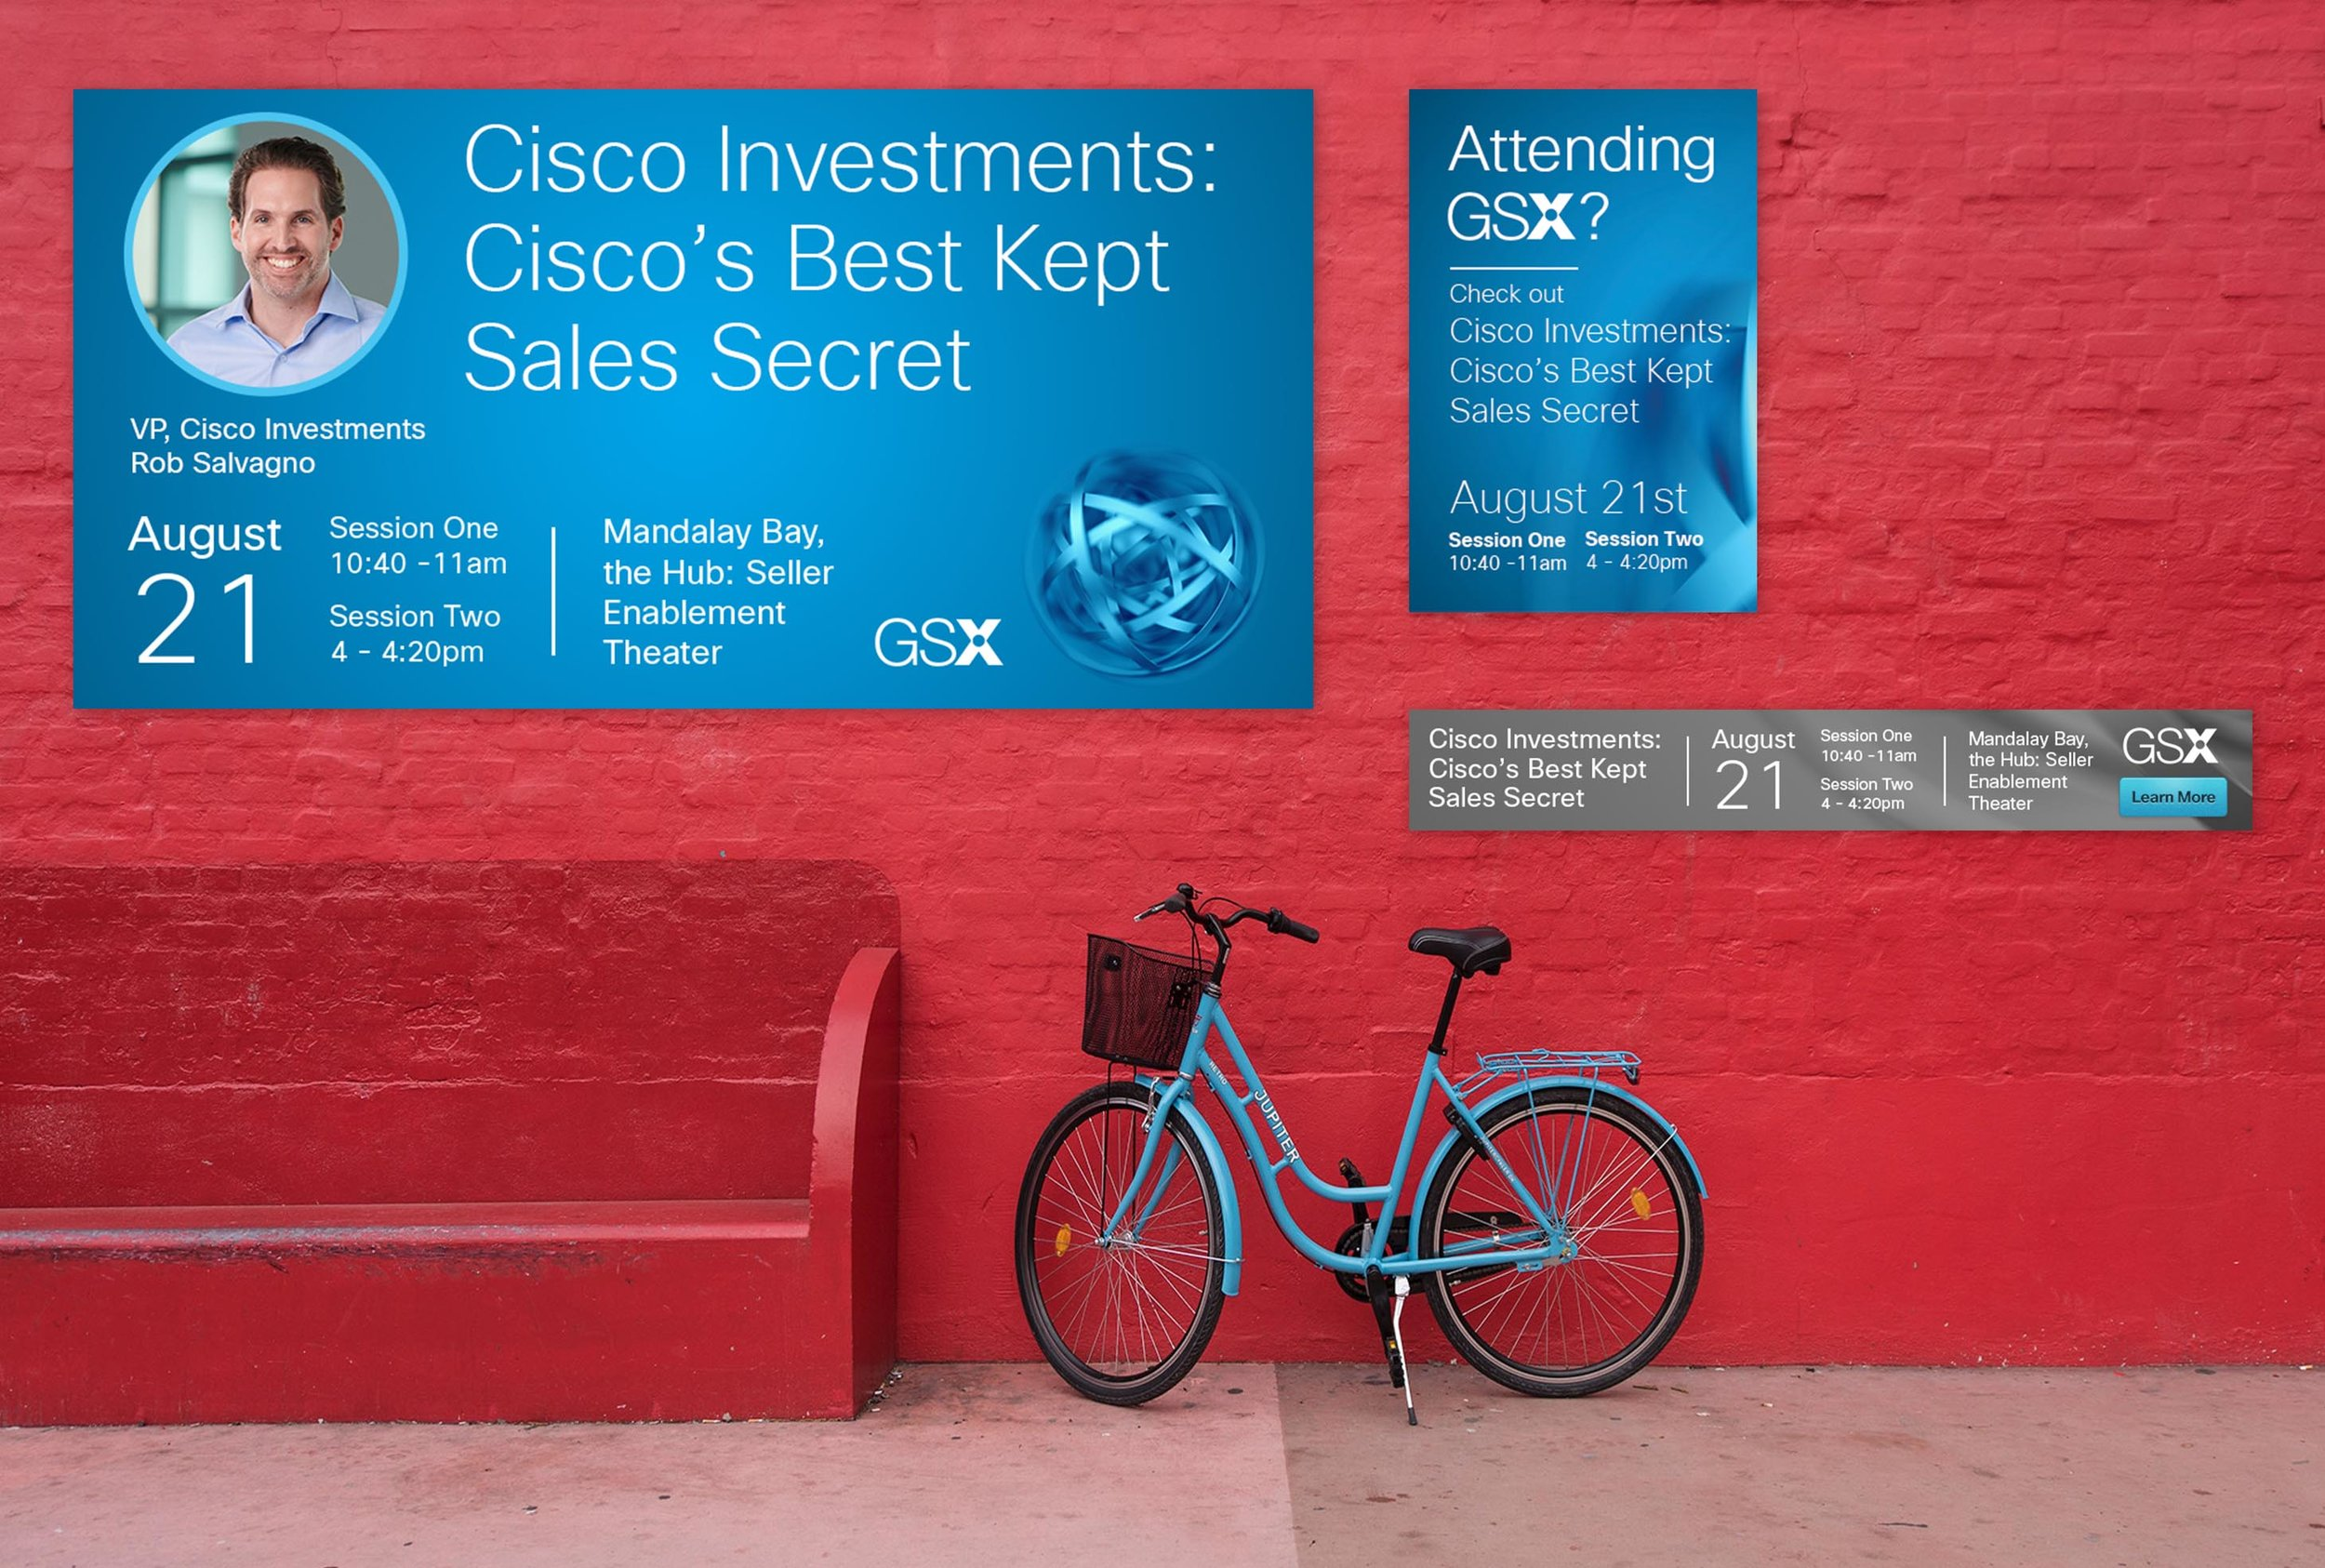 Cisco Investments GSX Advertisements